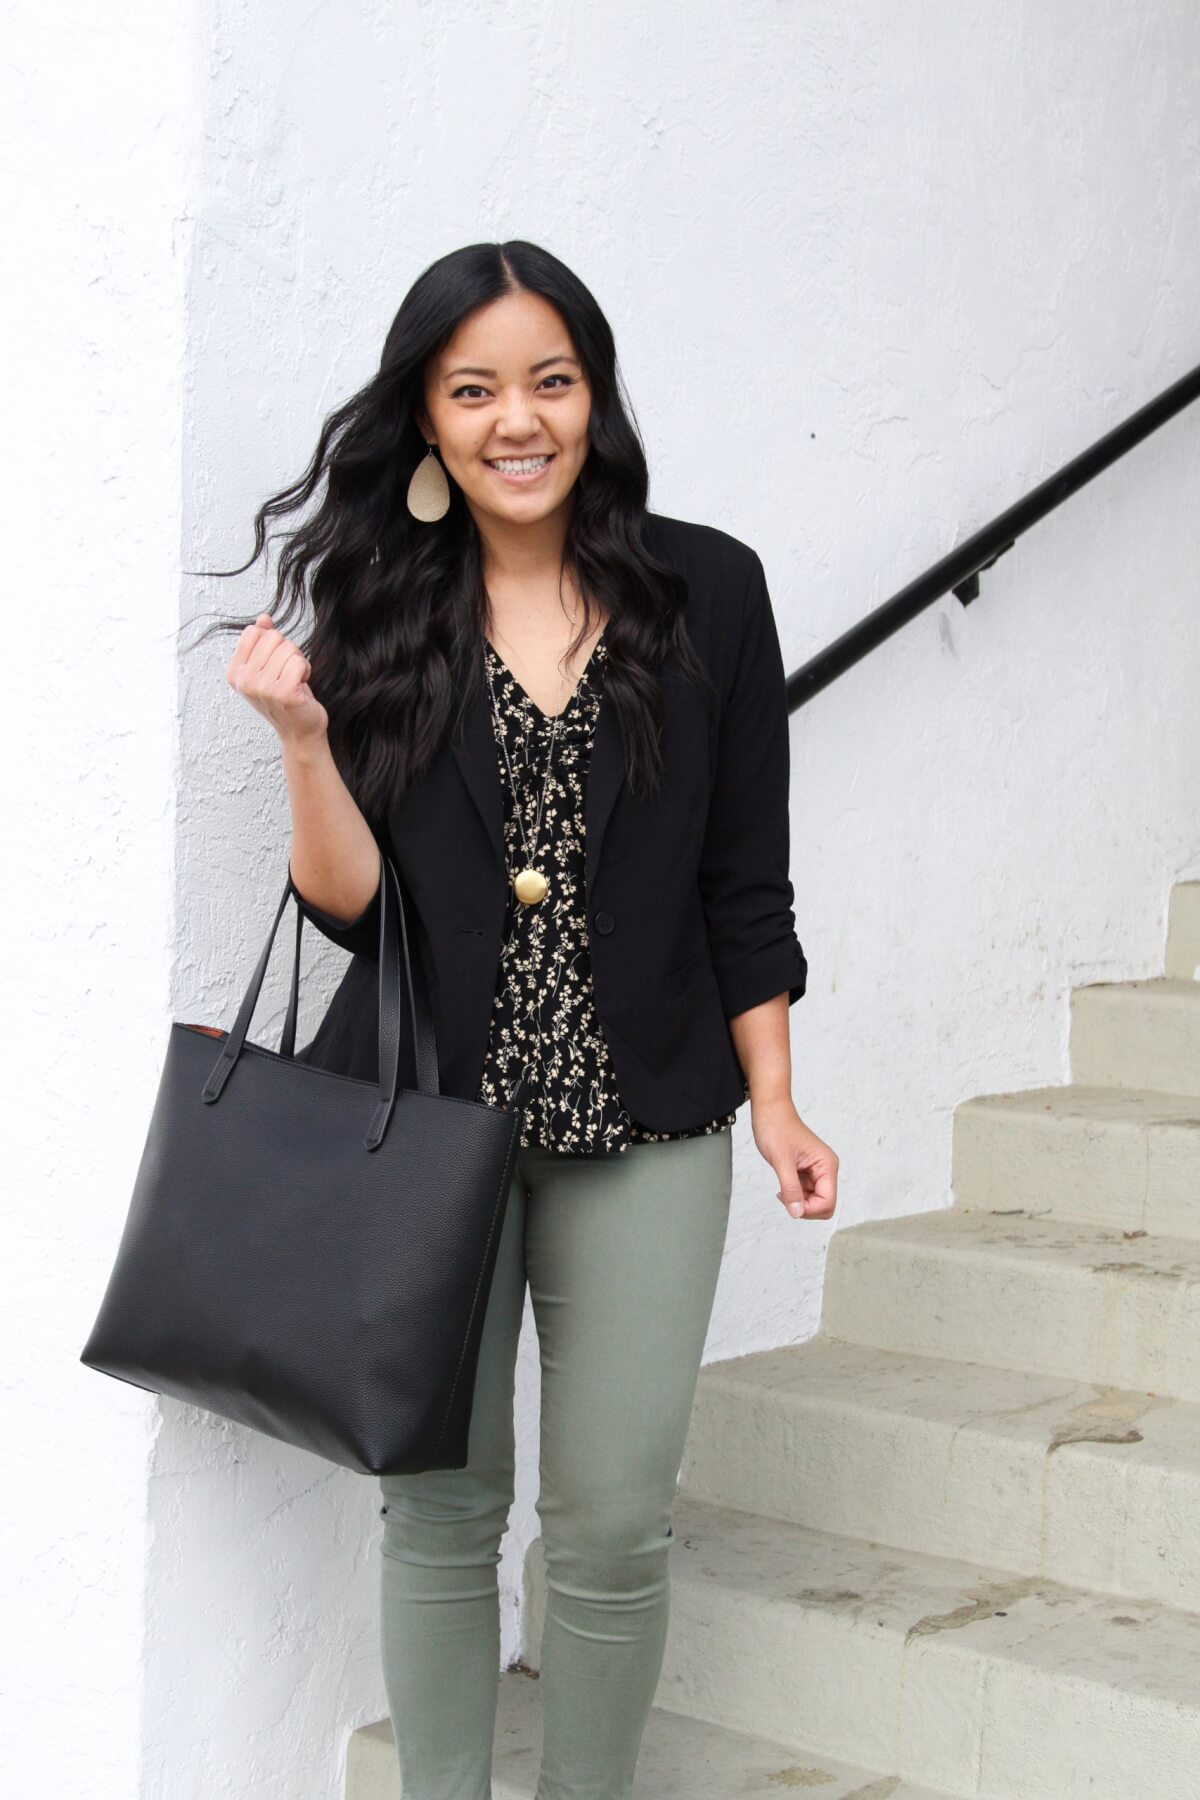 Work Outfit: black Eliza blazer + black and ivory floral top + olive pants + off-white earrings + pendant necklace + black tote